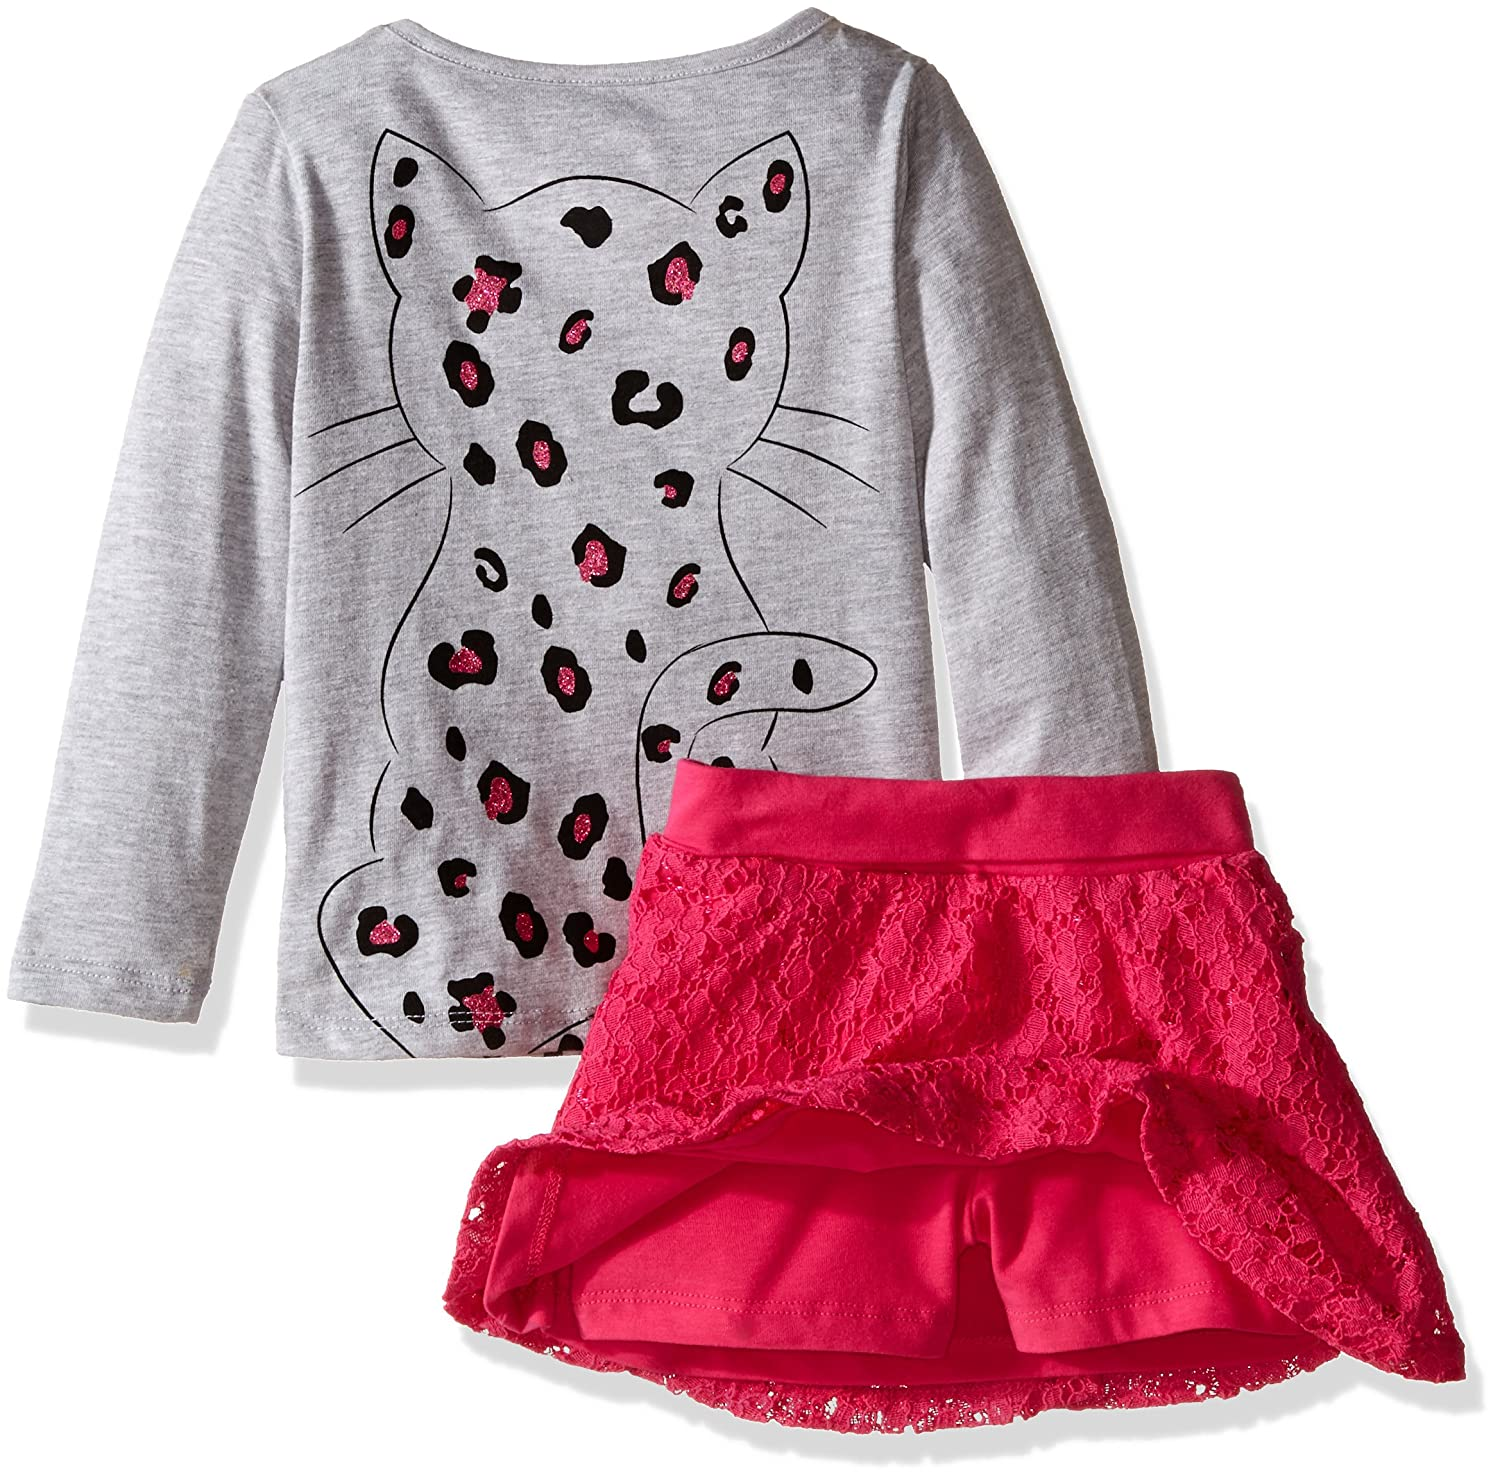 Kidtopia Girls 2pc Set-Long Sleeve Cat 3D Top with Lace Skirt